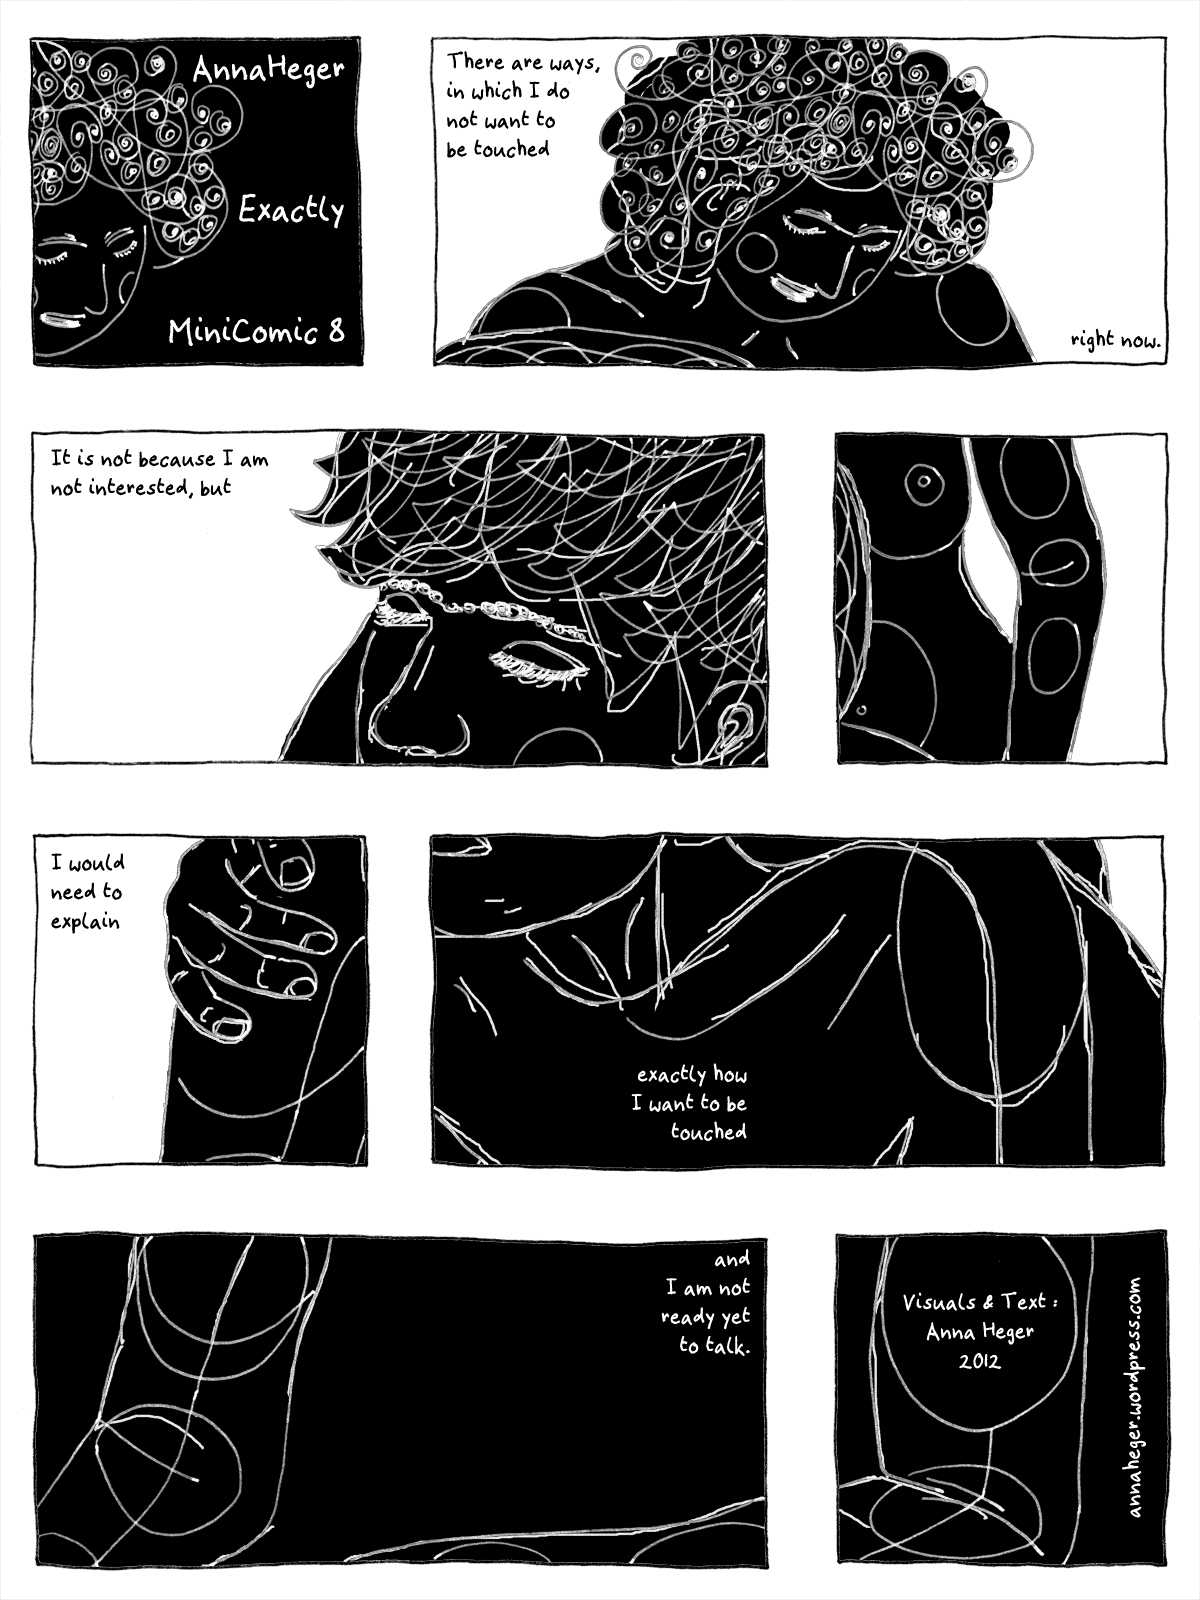 Minicomic 8e: Exactly, the entire comic is transcribed to plain text